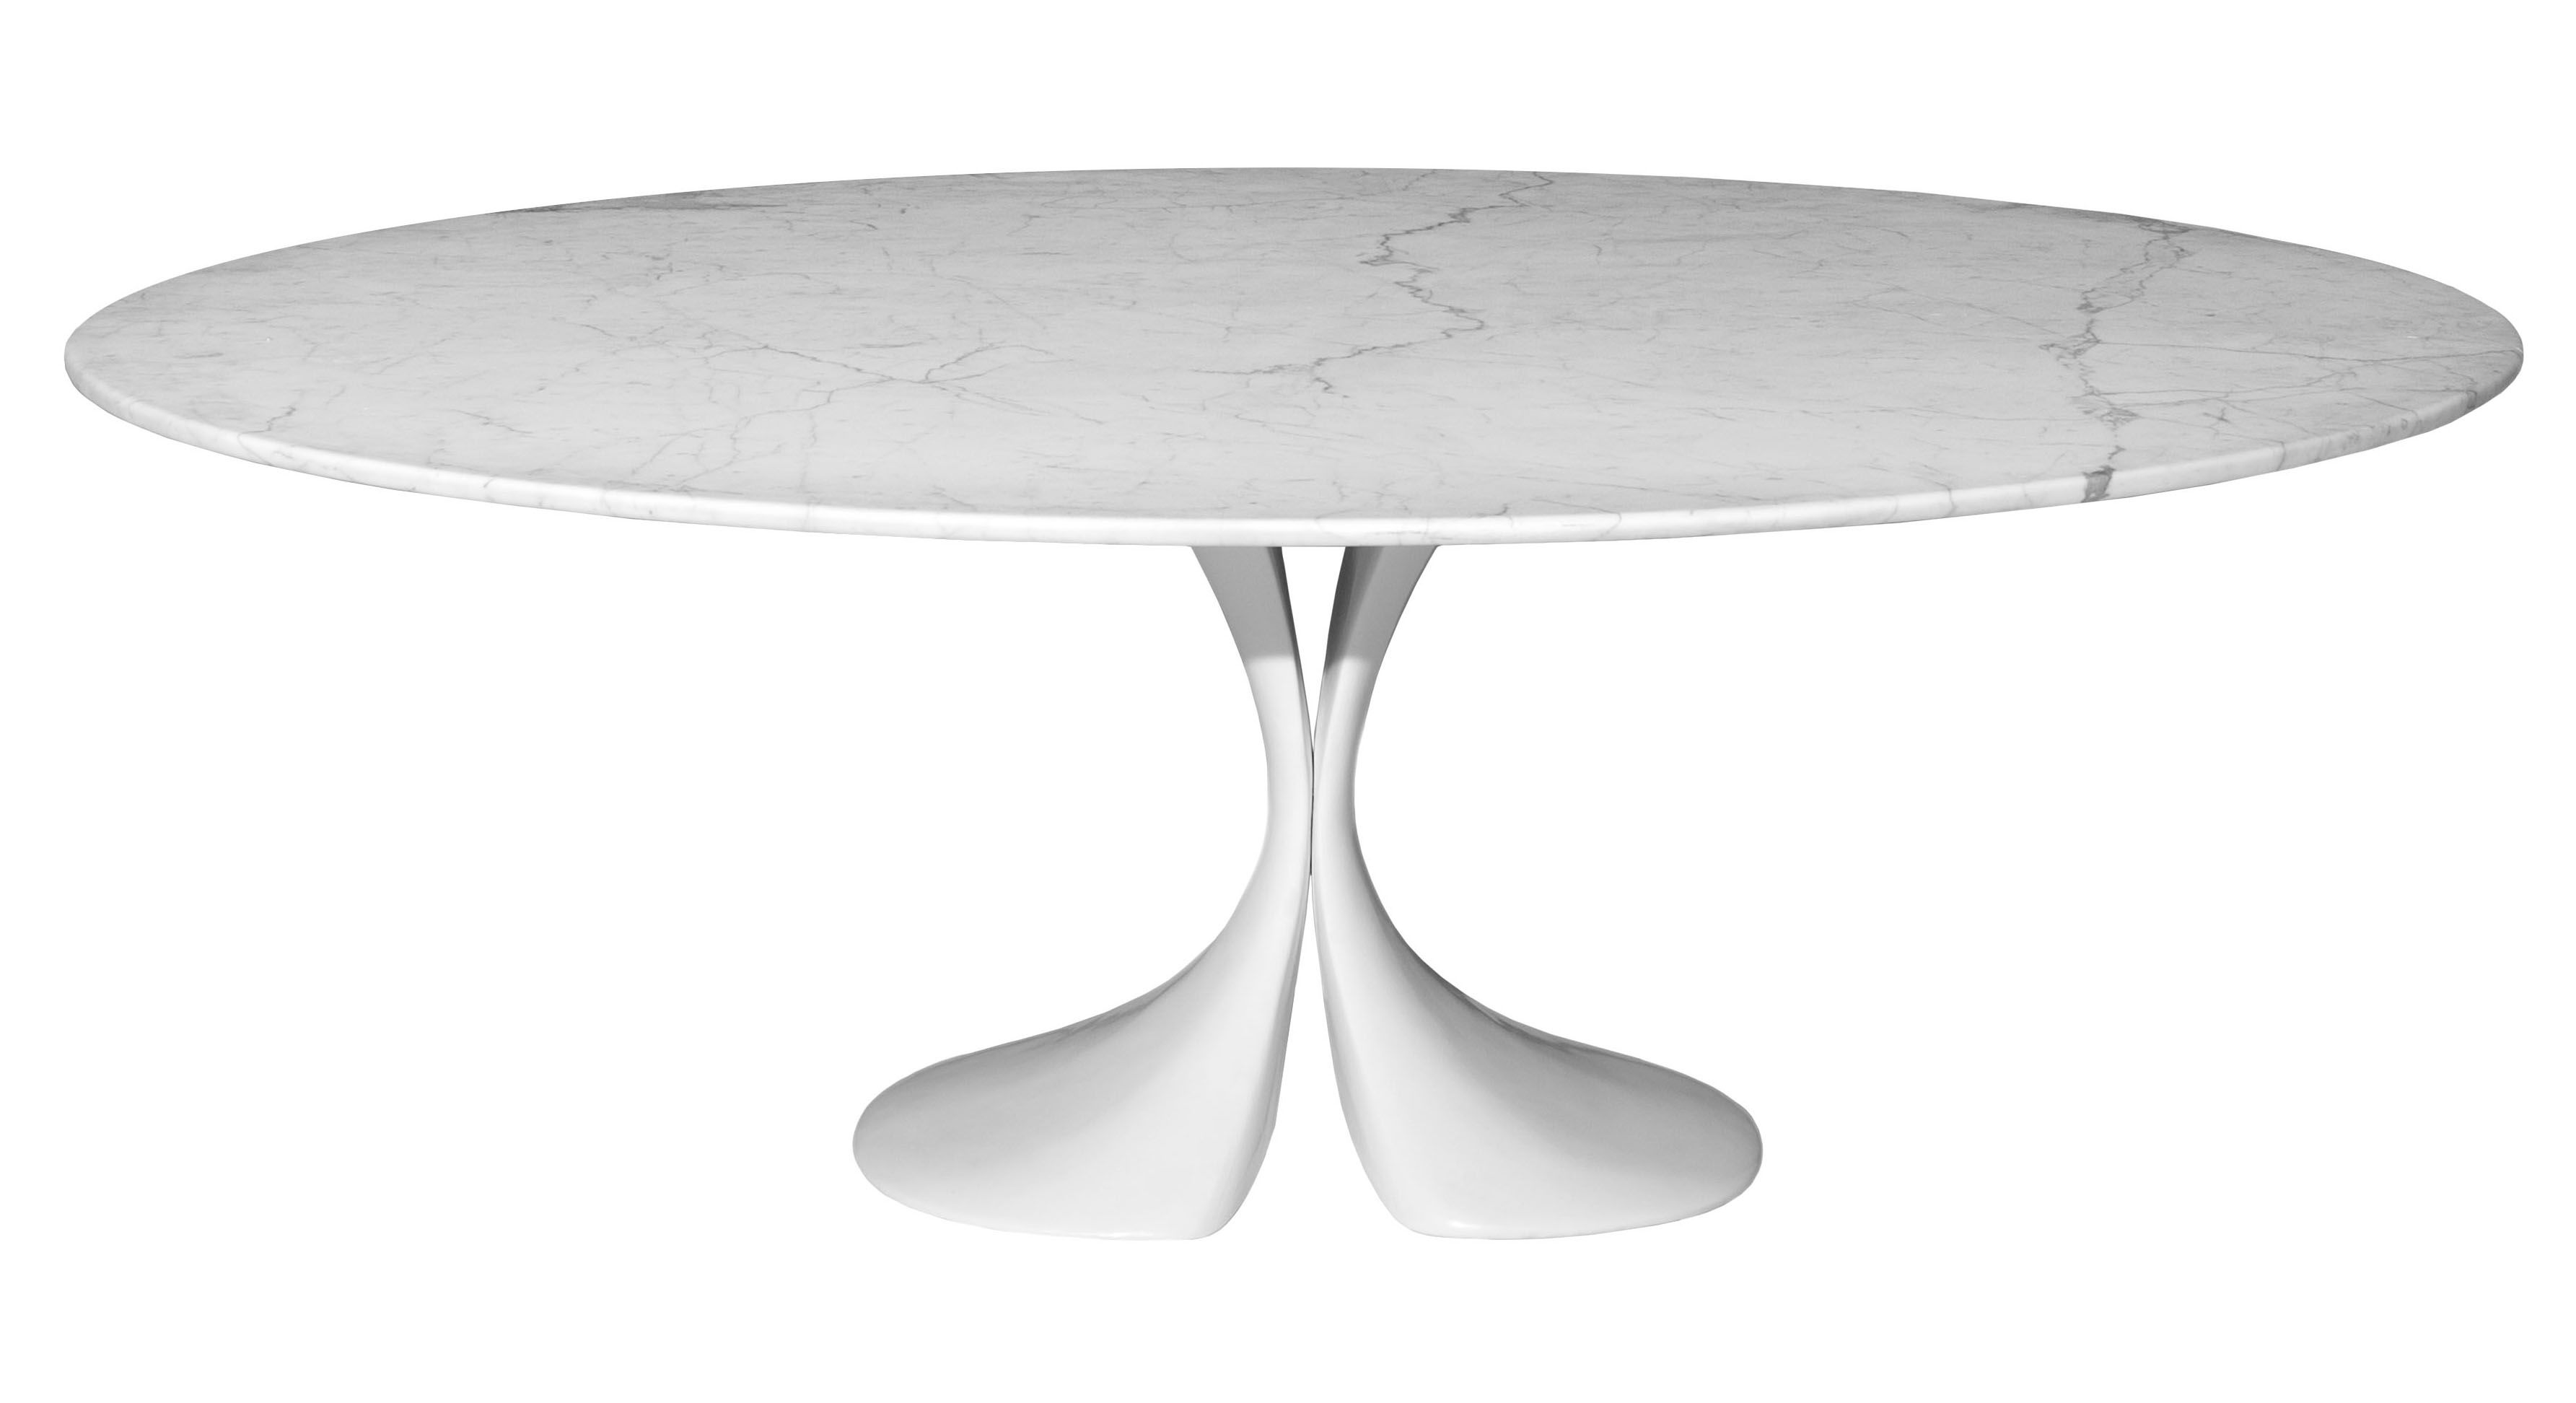 Furniture - Dining Tables - Didymos Table ovale - 200 x 140 cm - Marble top by Driade - White marble top - Cristalplant, Marble